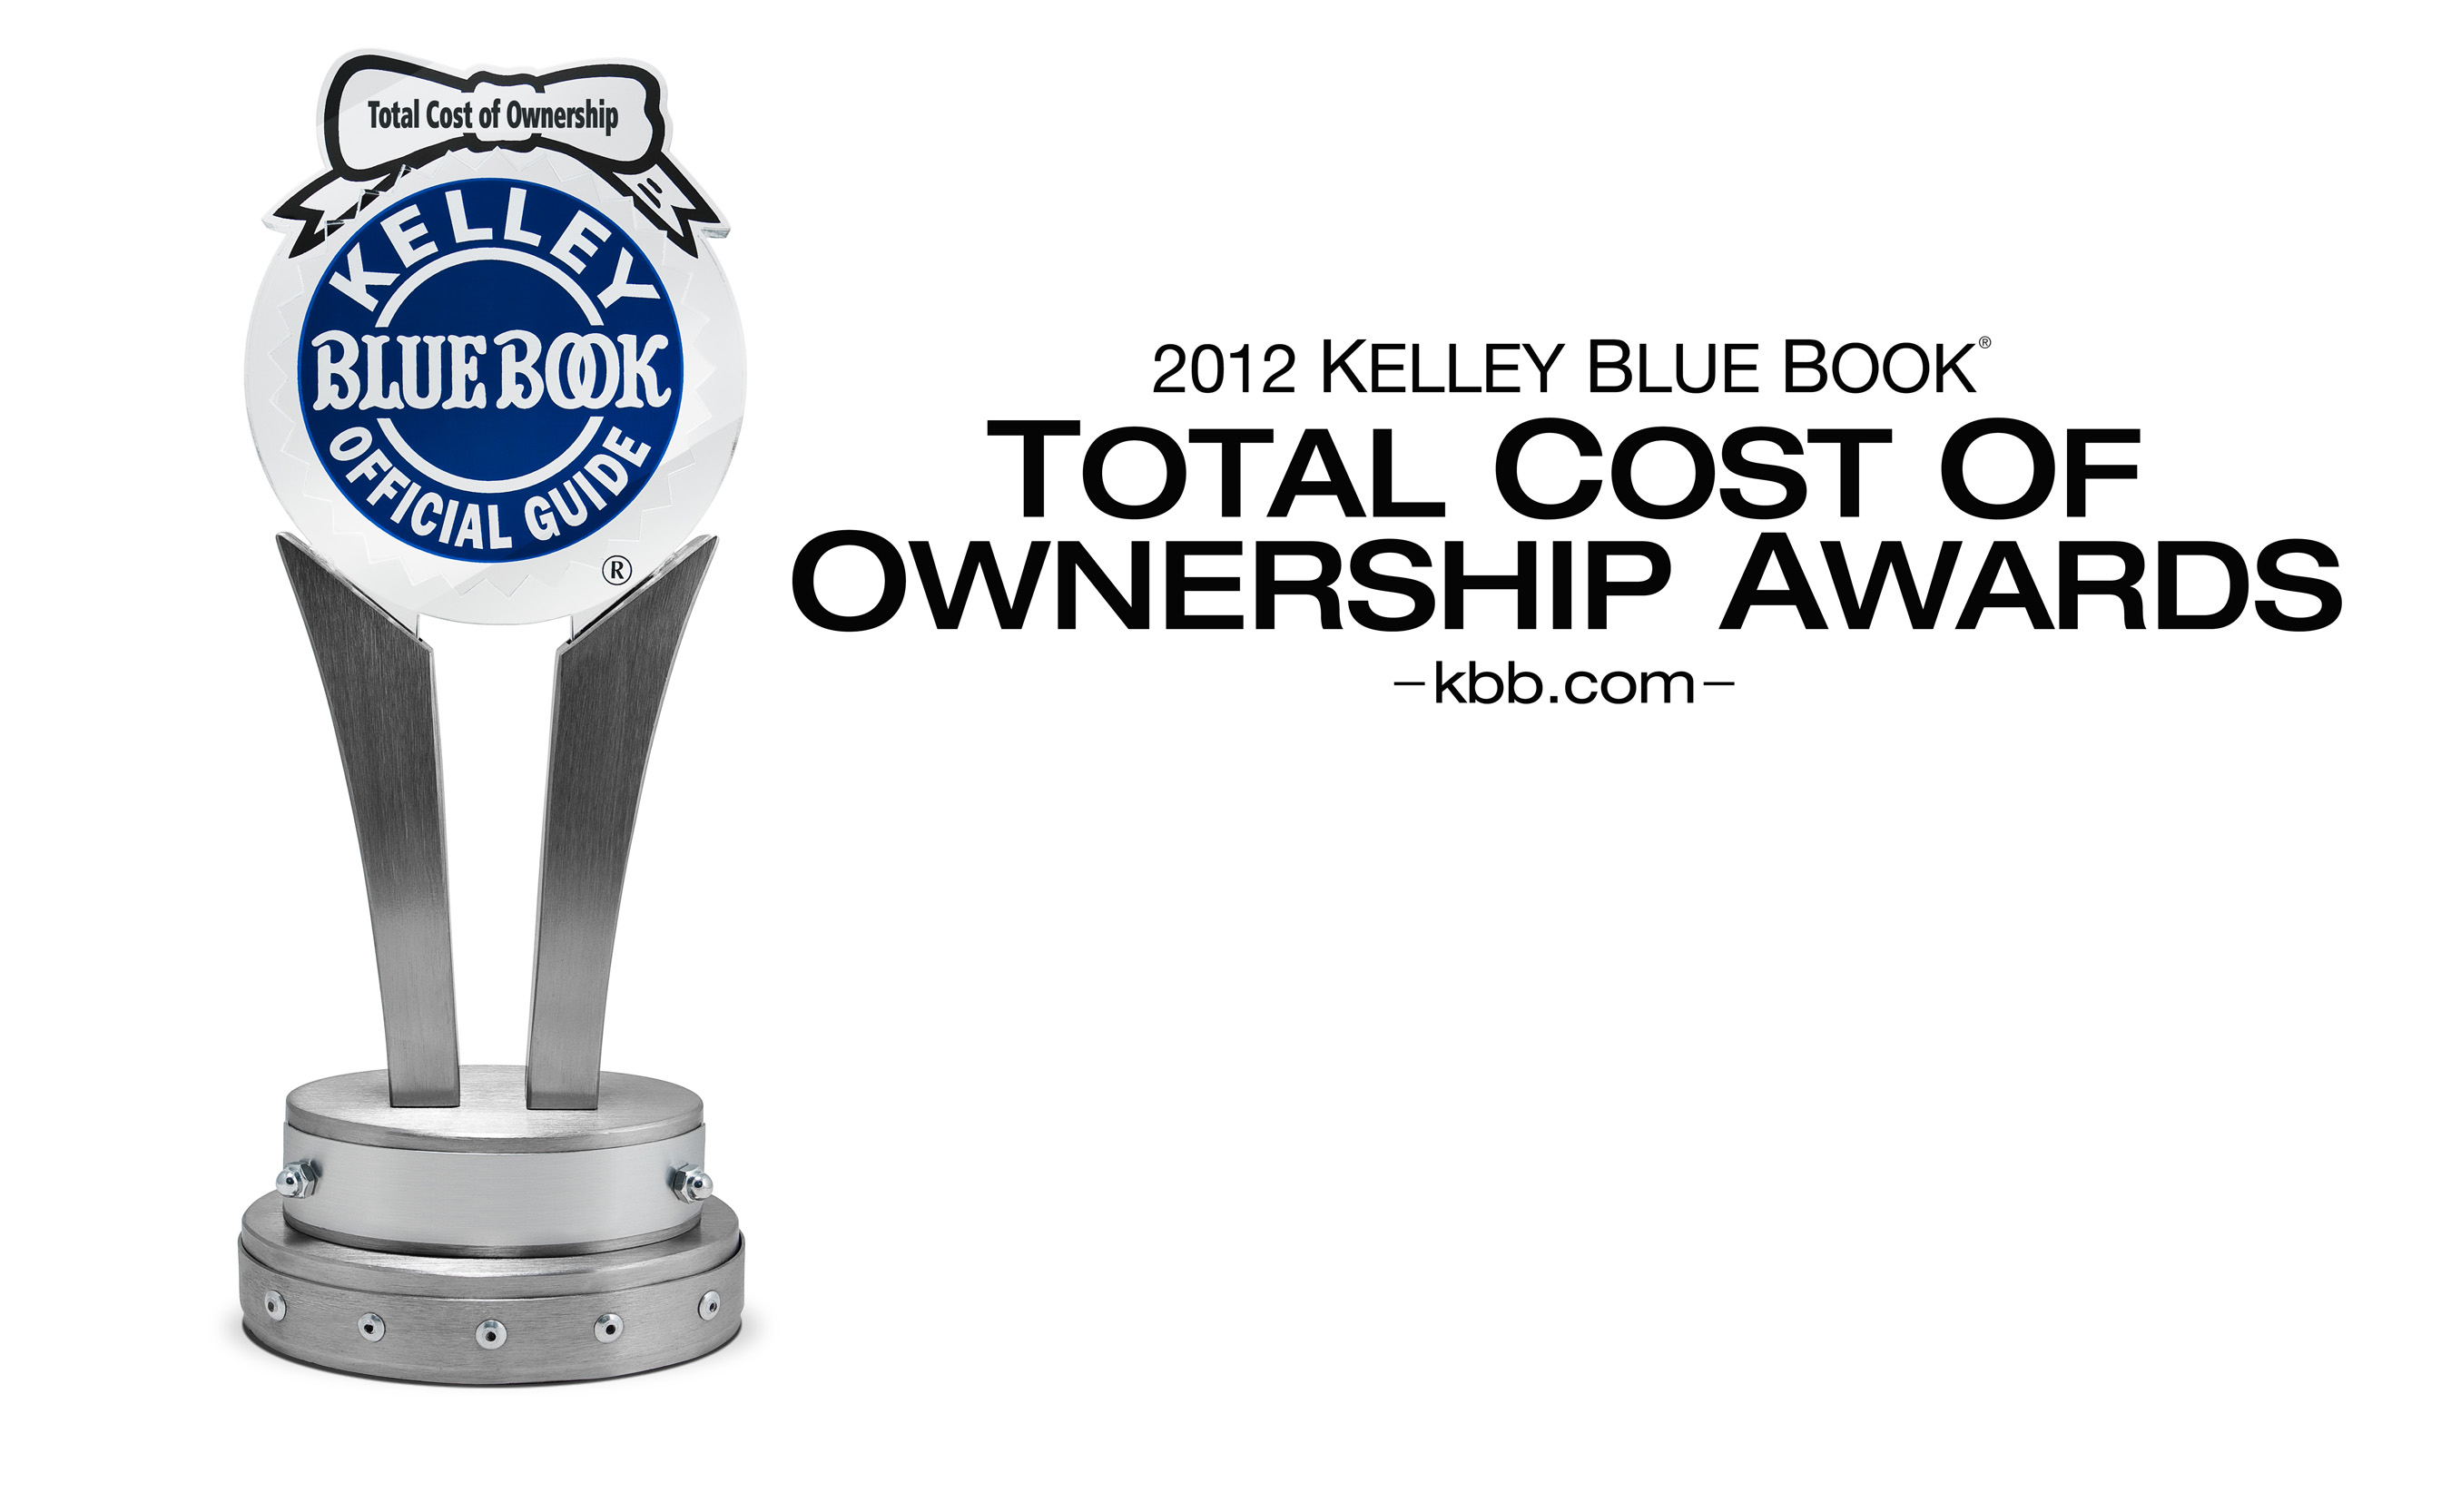 KBB Announces Inaugural Total Cost of Ownership Award Winners